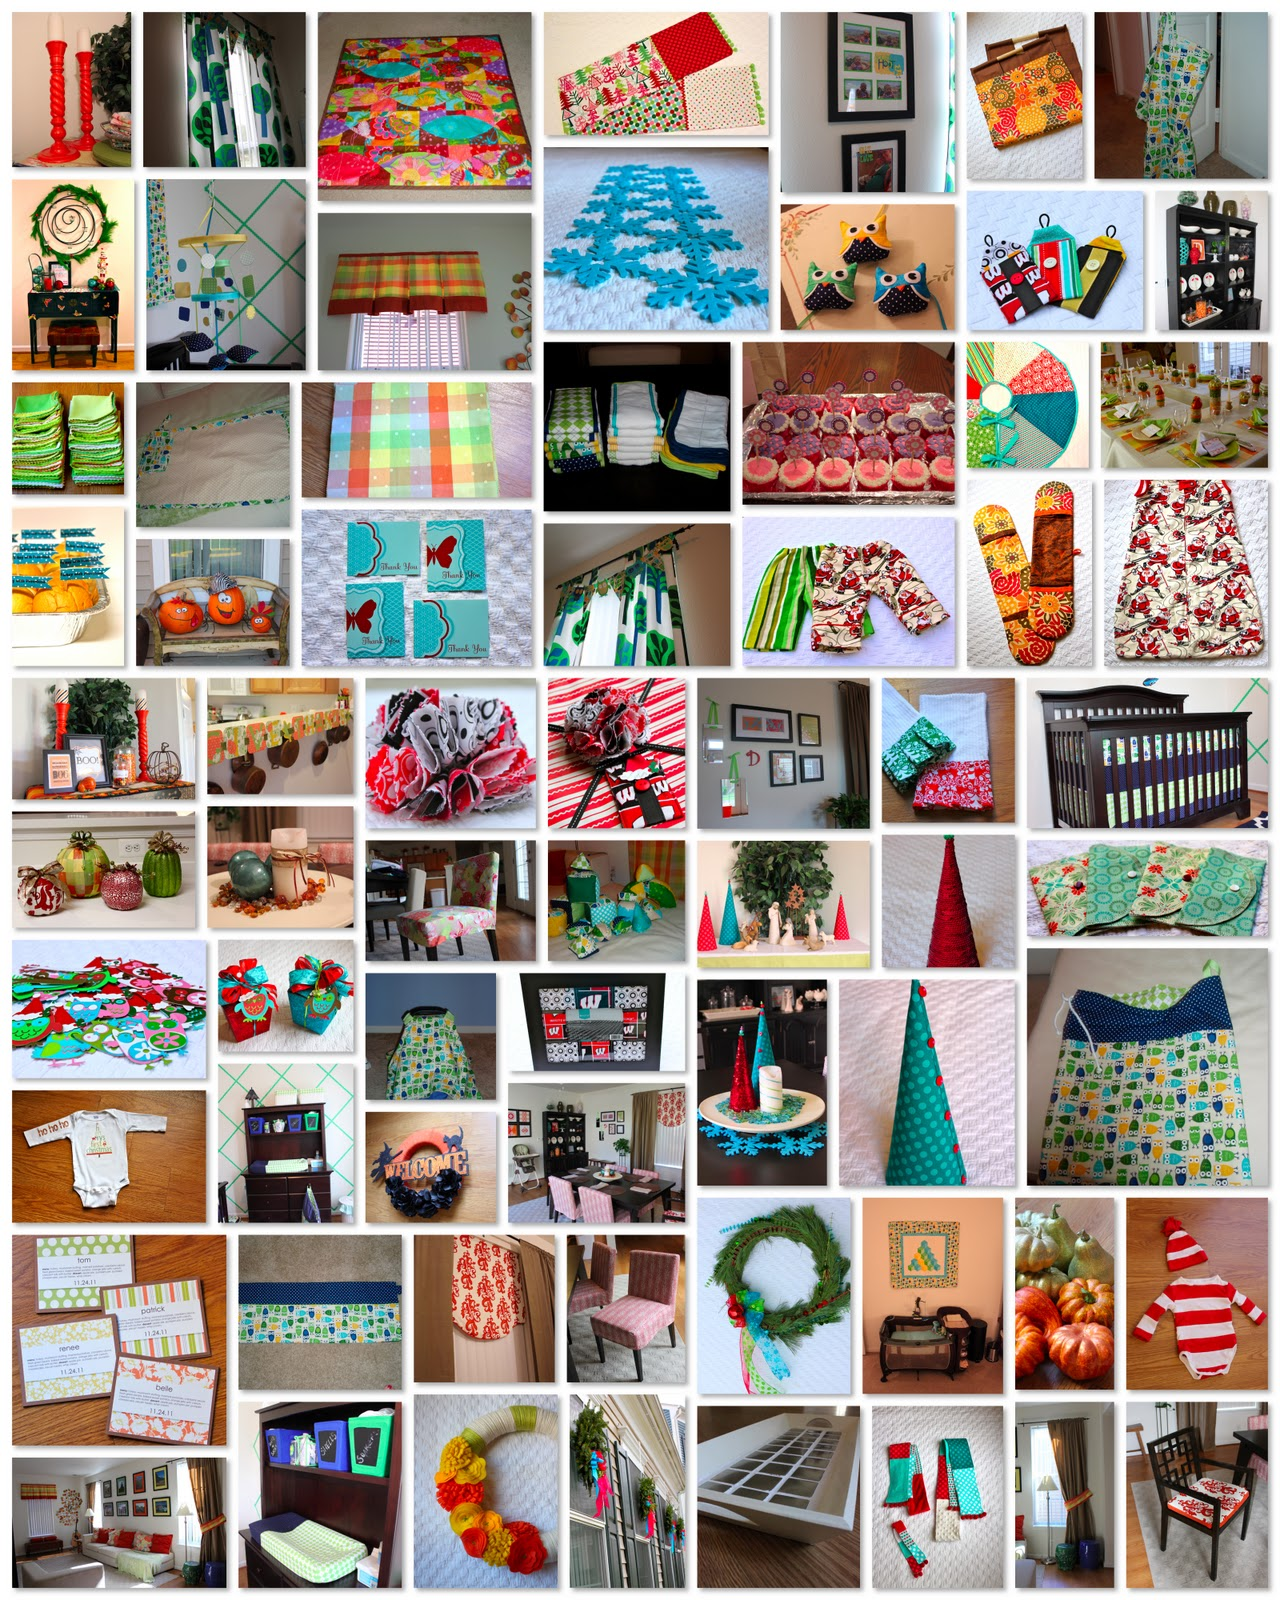 Home Decor Sewing Projects Projects Collage 2011 The Homes I Have Made